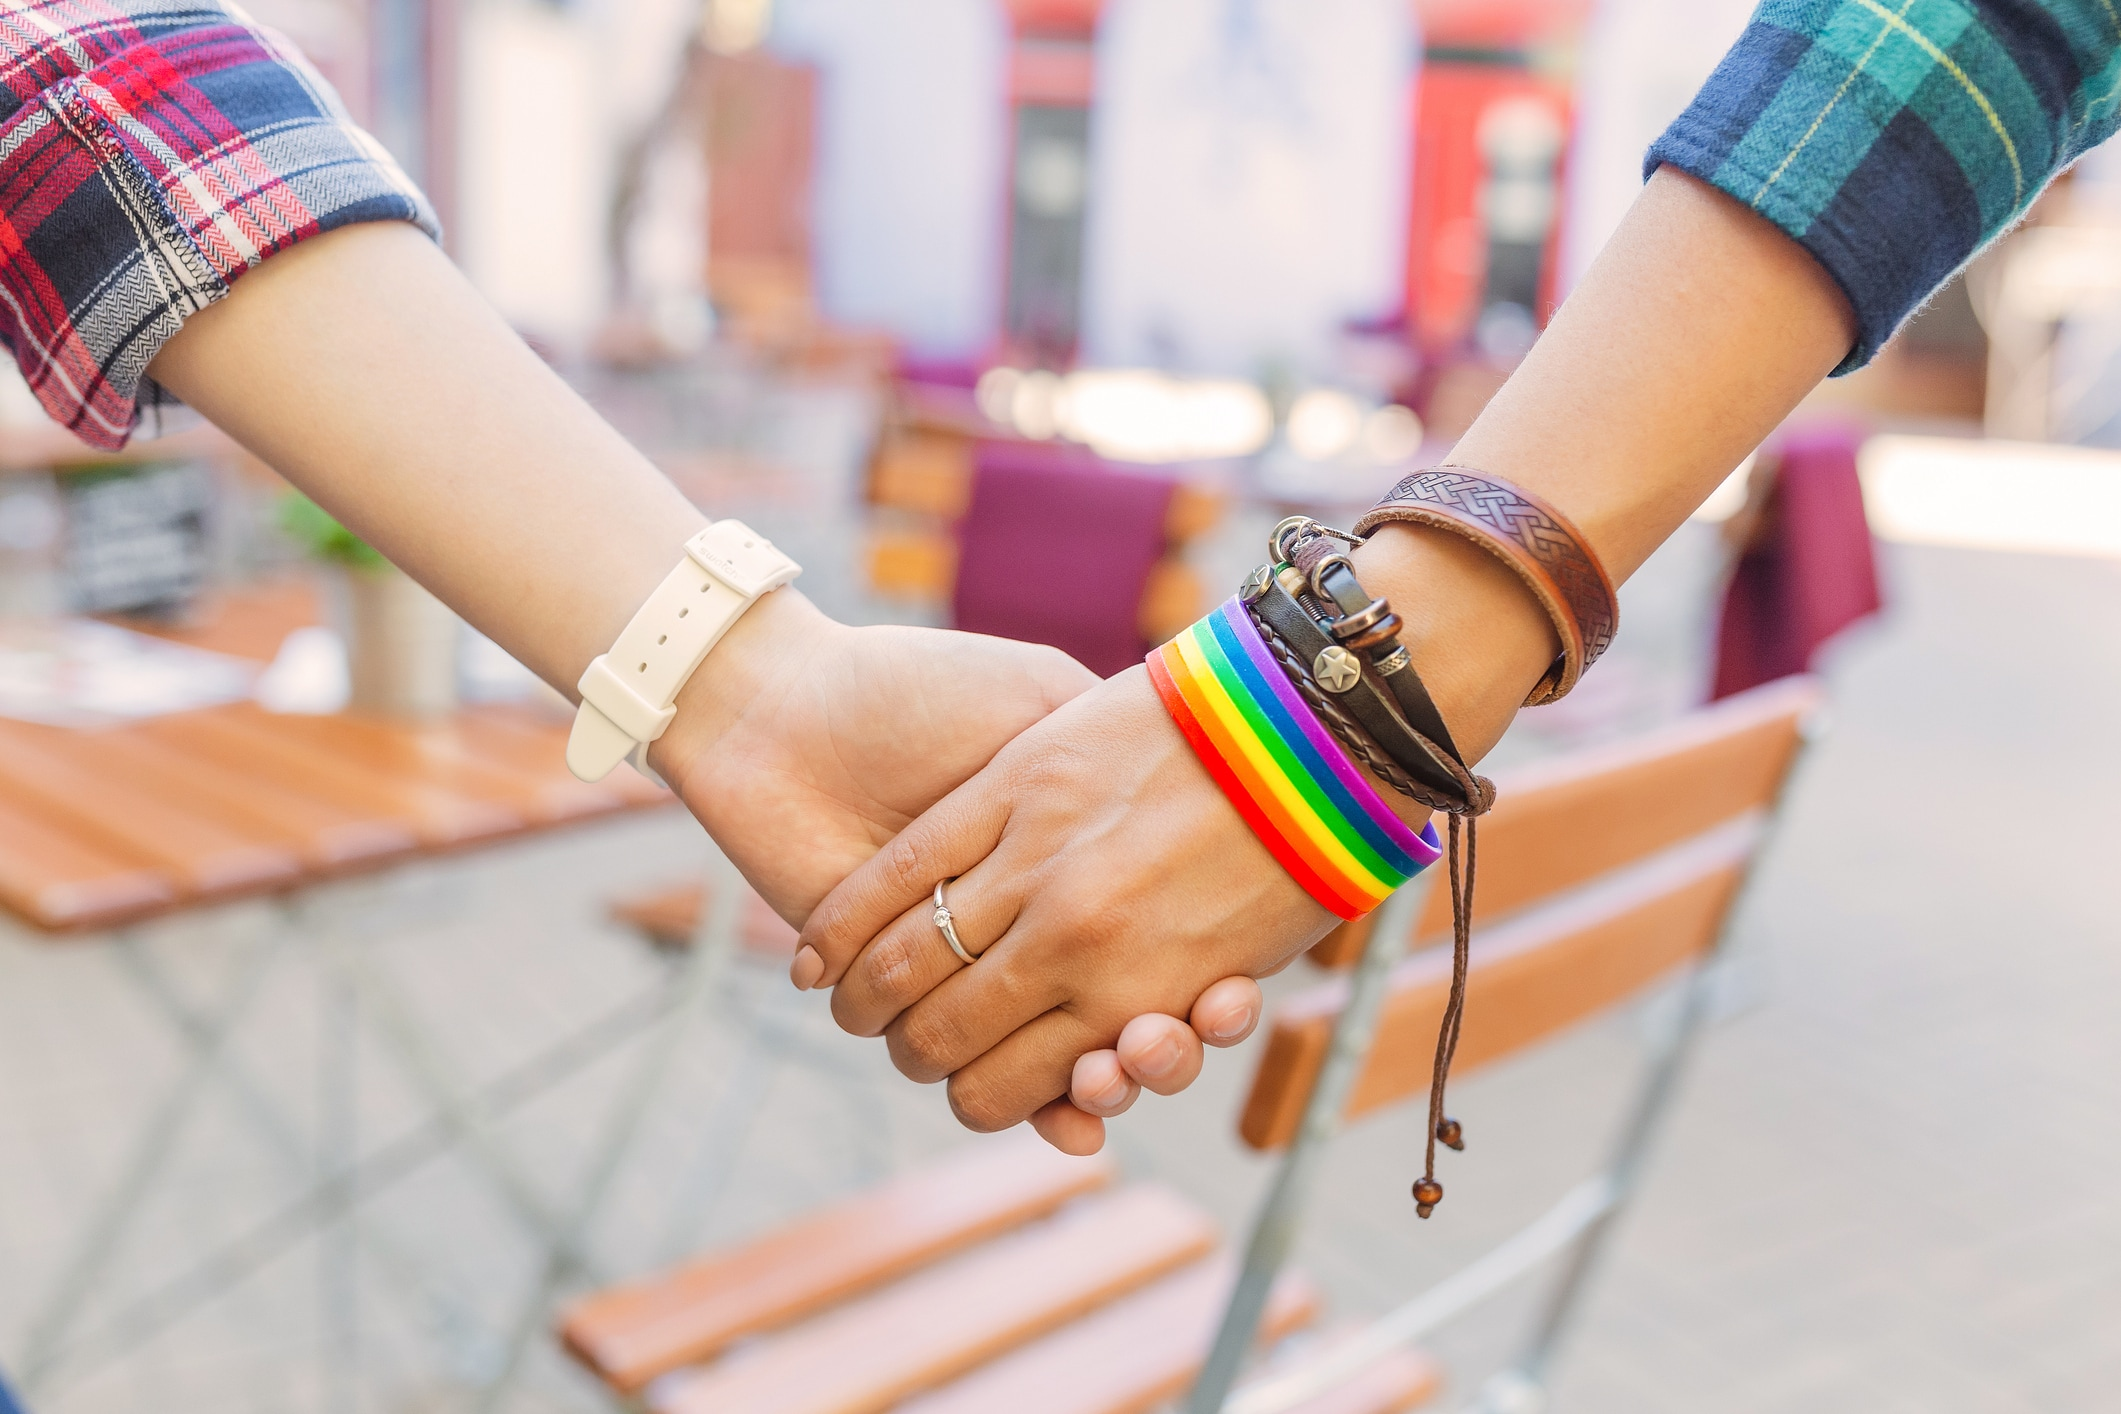 A woman's hand wearing a rainbow wristlet and holding another woman's hand